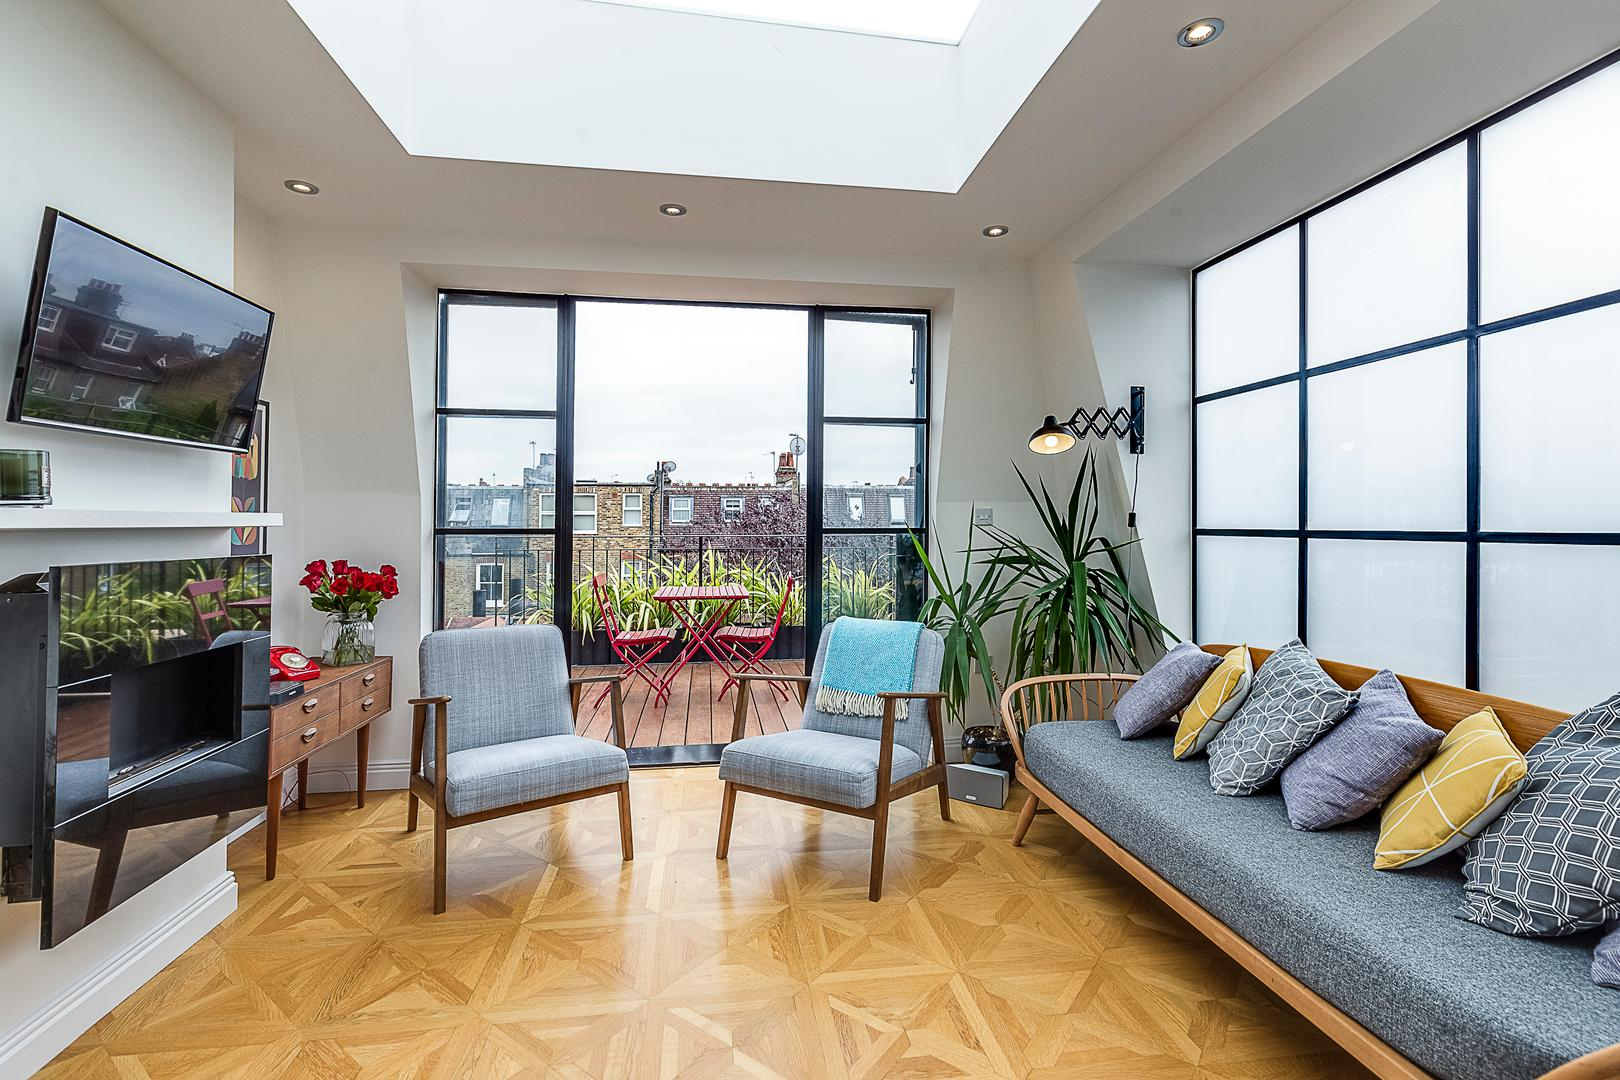 Property Image 2 - Arty Hammersmith Home by the River with Rooftop Terrace